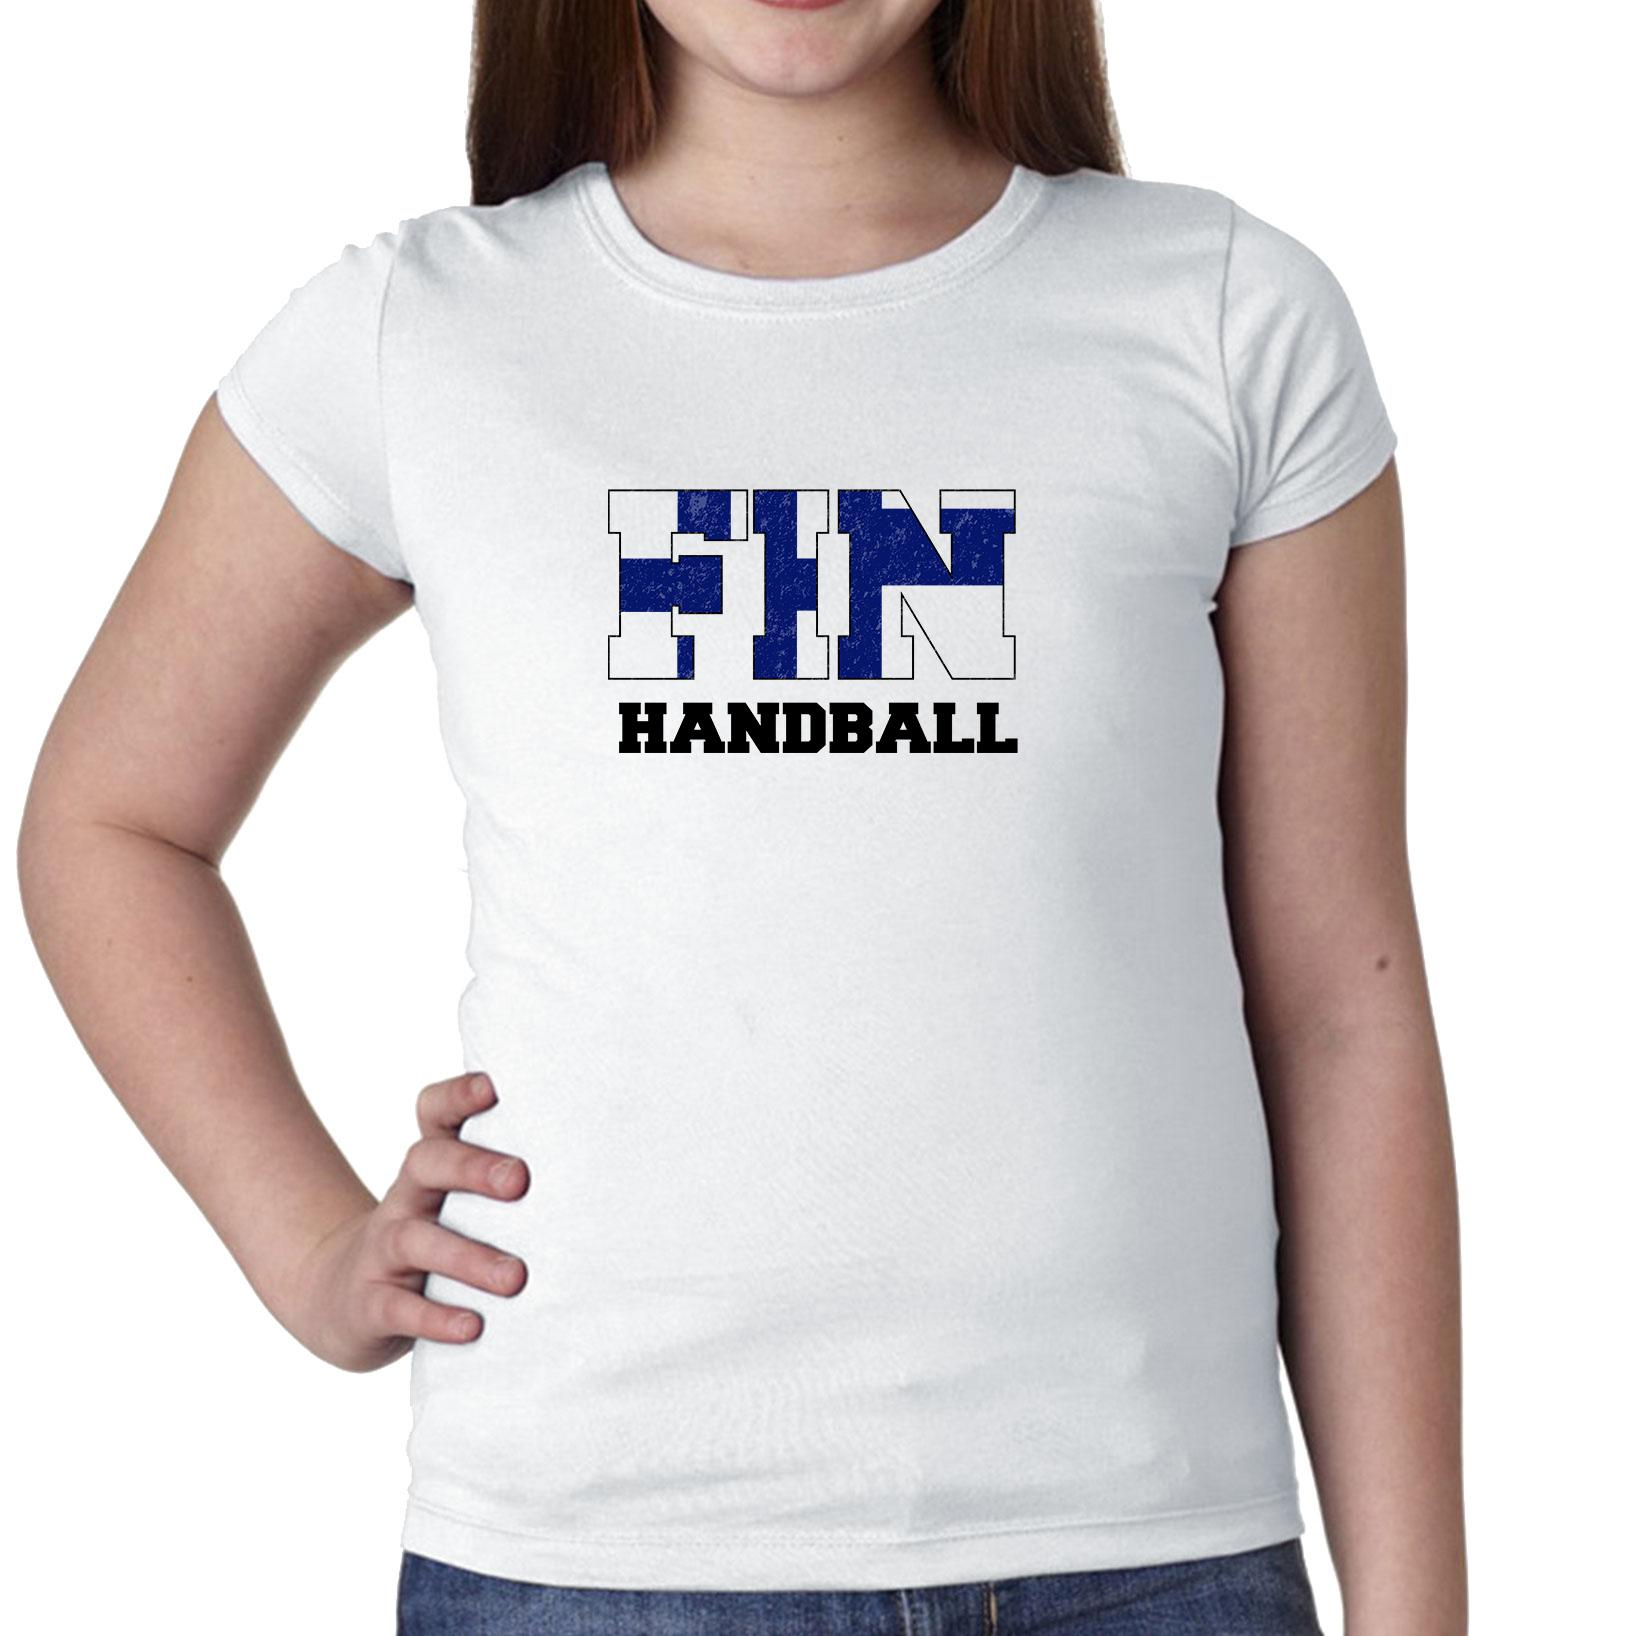 Finland Handball Olympic Games Rio Flag Girl's Cotton Youth T-Shirt by Hollywood Thread